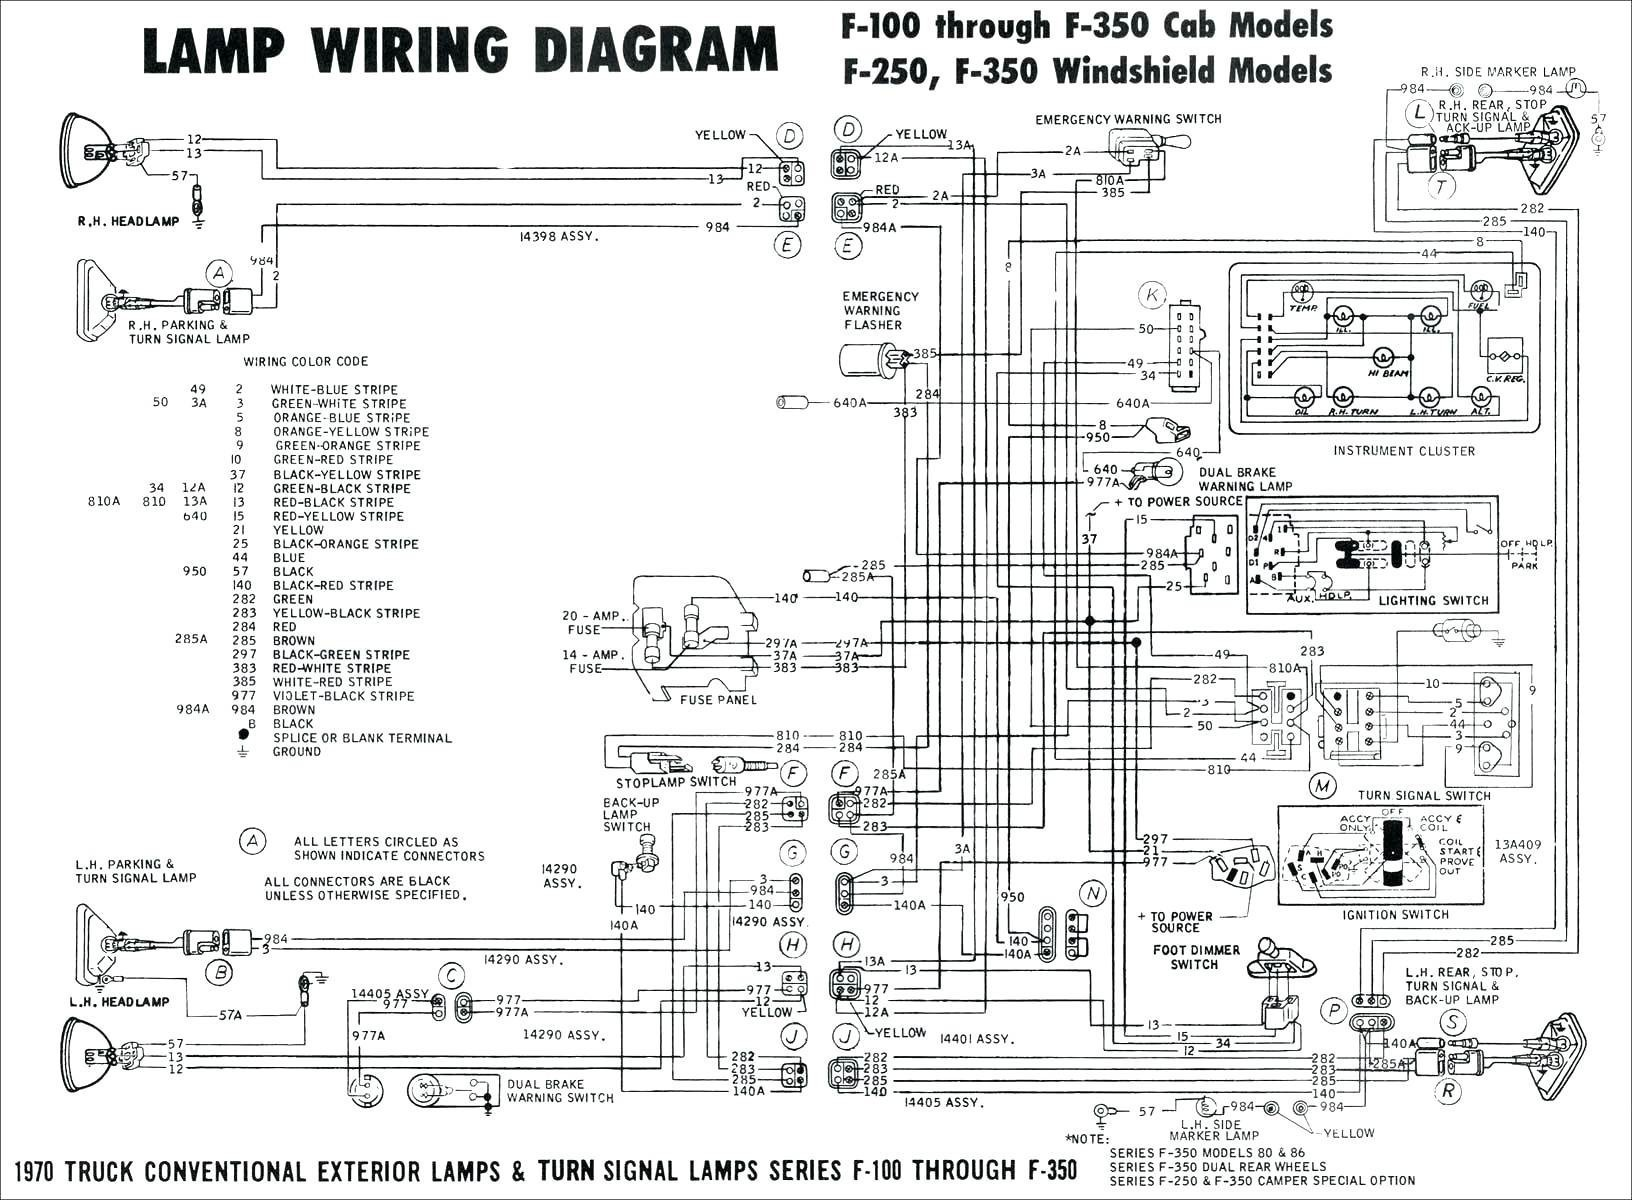 2003 ford Explorer 4 0 Engine Diagram 1970 ford F 250 Fuse Box Another Blog About Wiring Diagram • Of 2003 ford Explorer 4 0 Engine Diagram